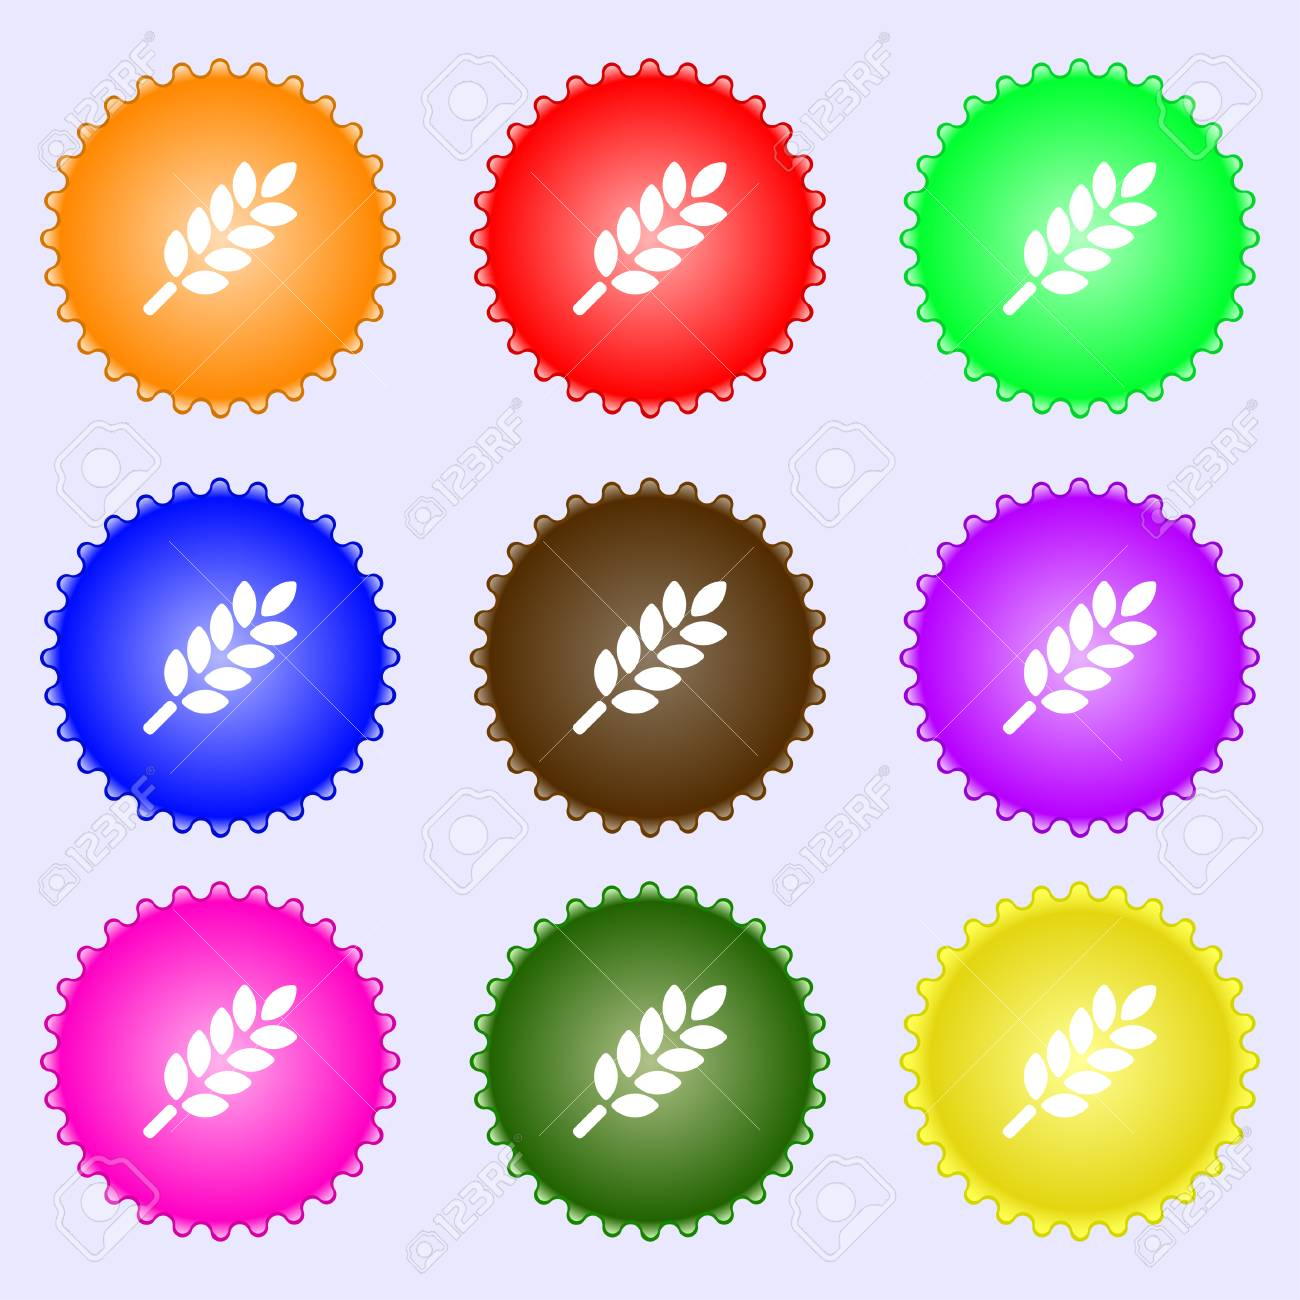 Wheat Ears Icon sign  Big set of colorful, diverse, high-quality